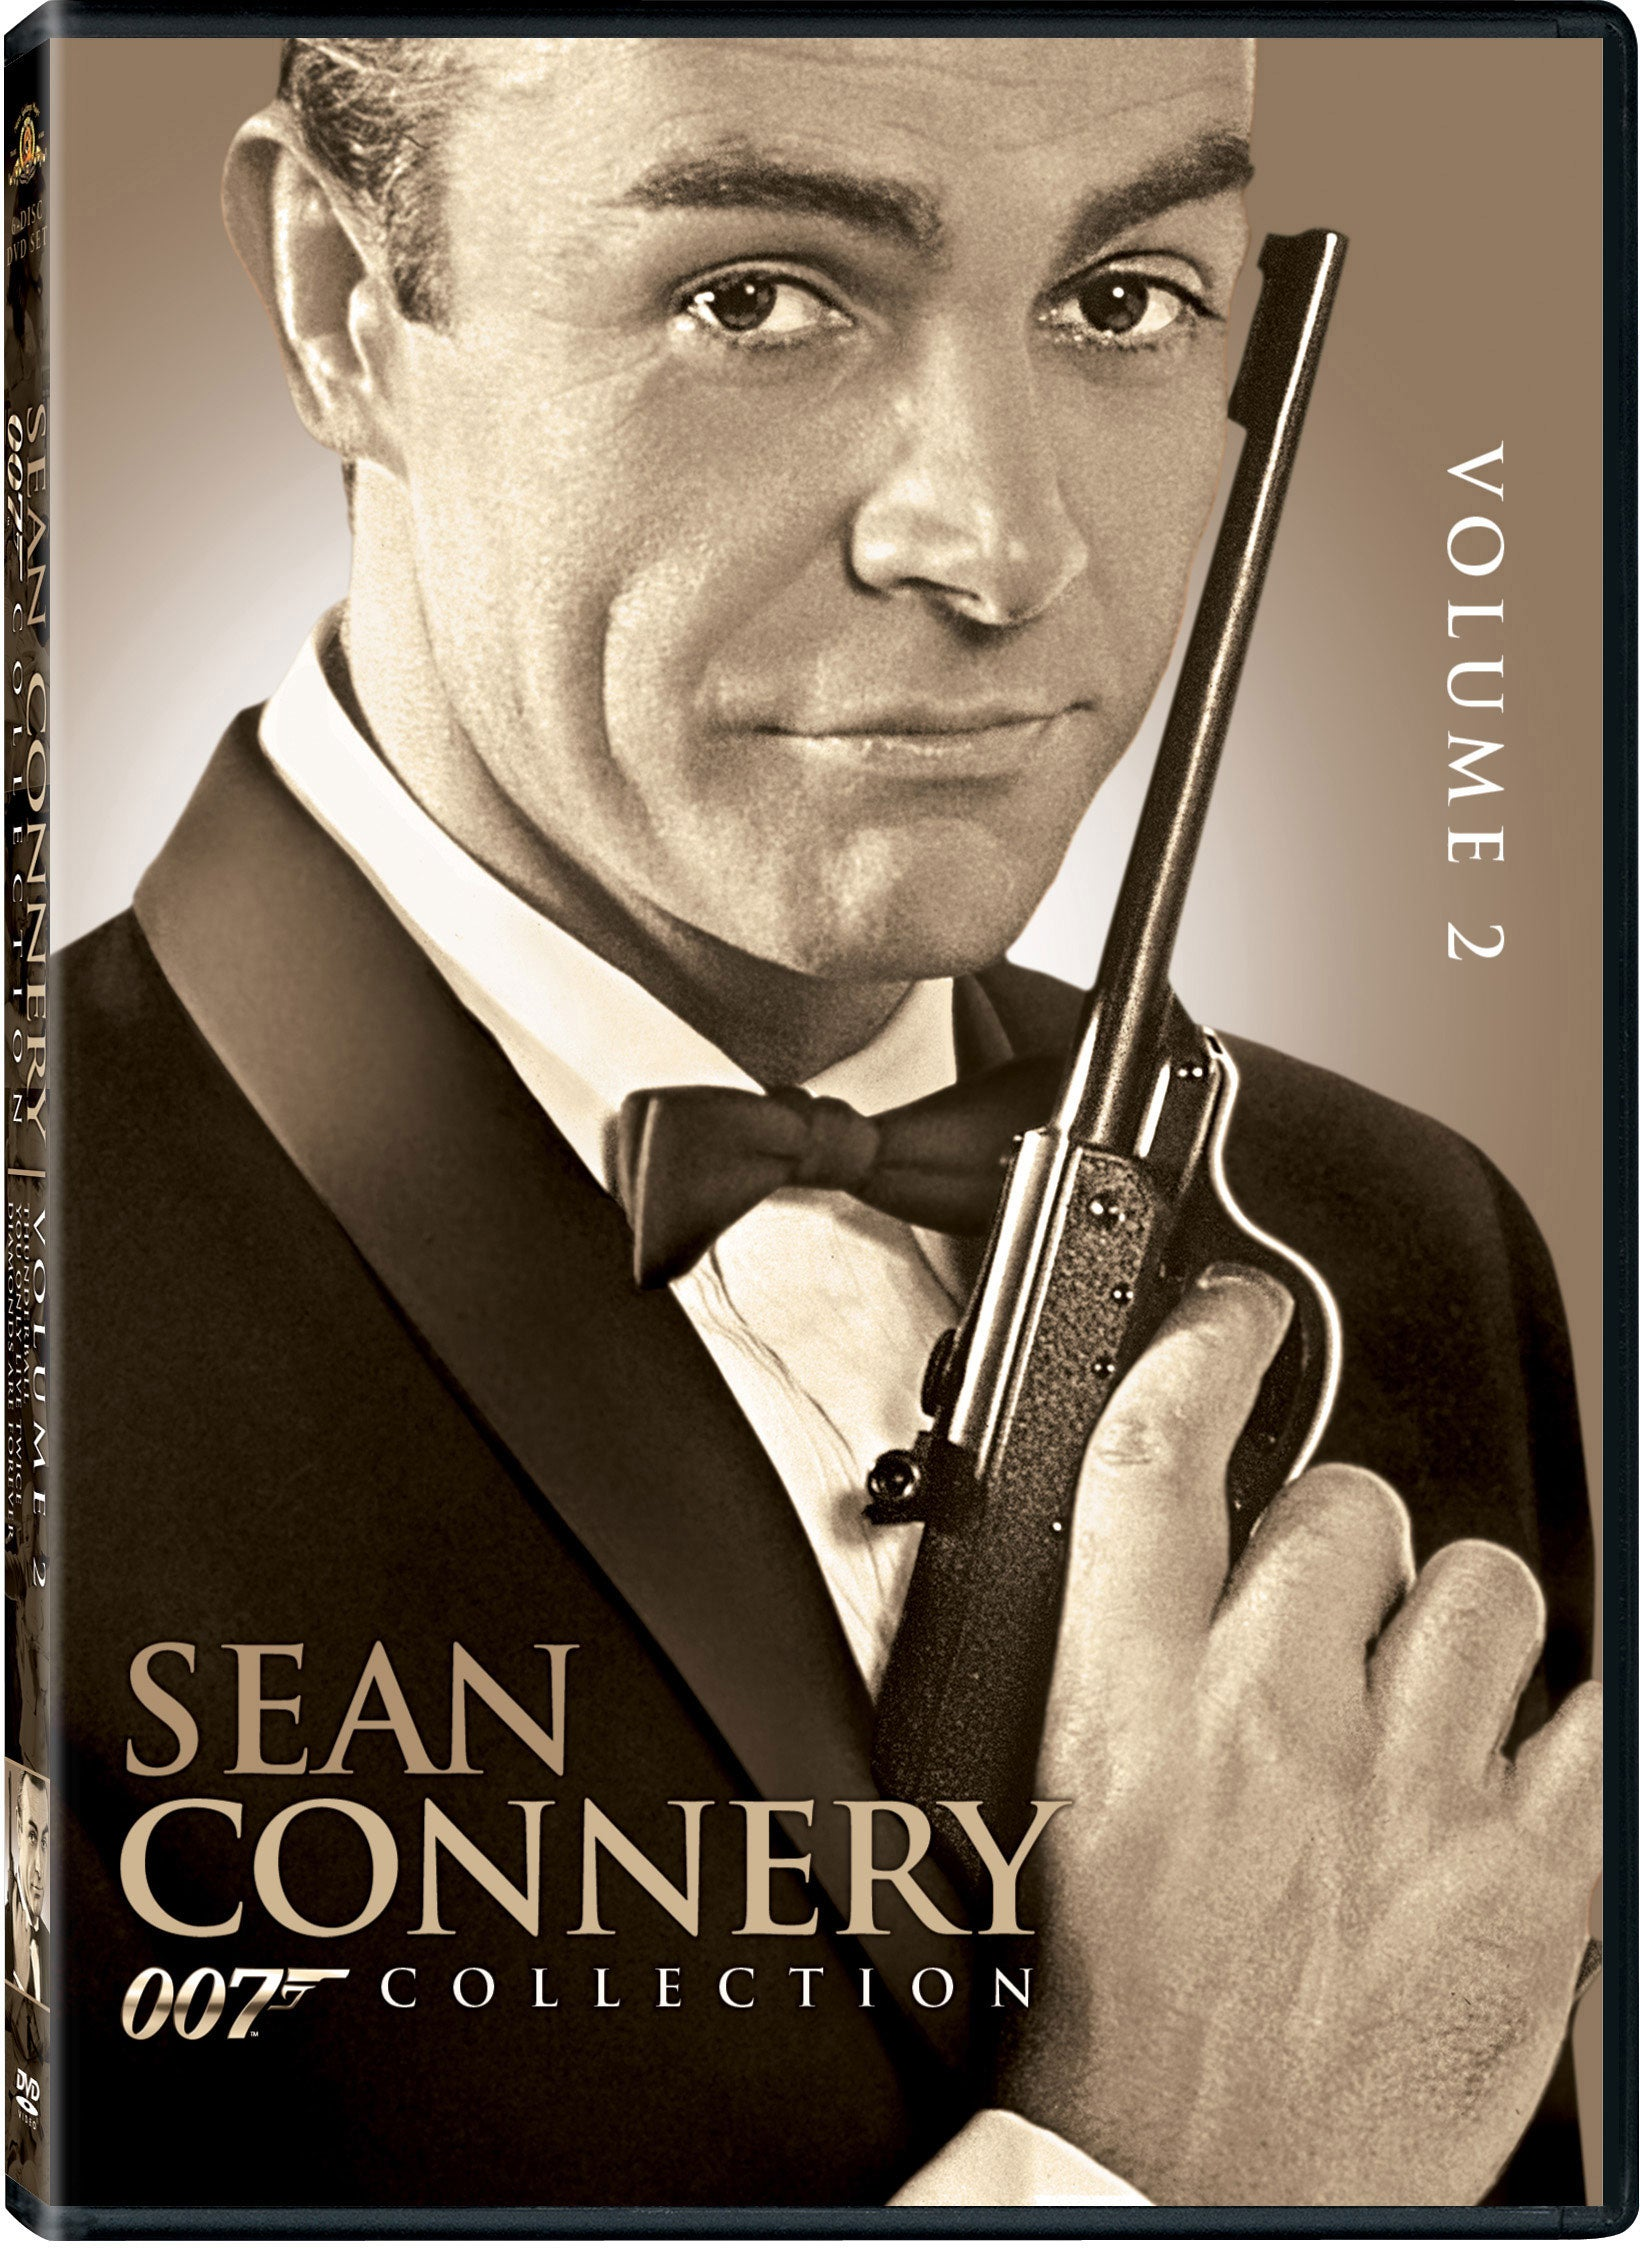 Sean Connery James Bond 007 Ultimate Collection: Vol. 2 (DVD)